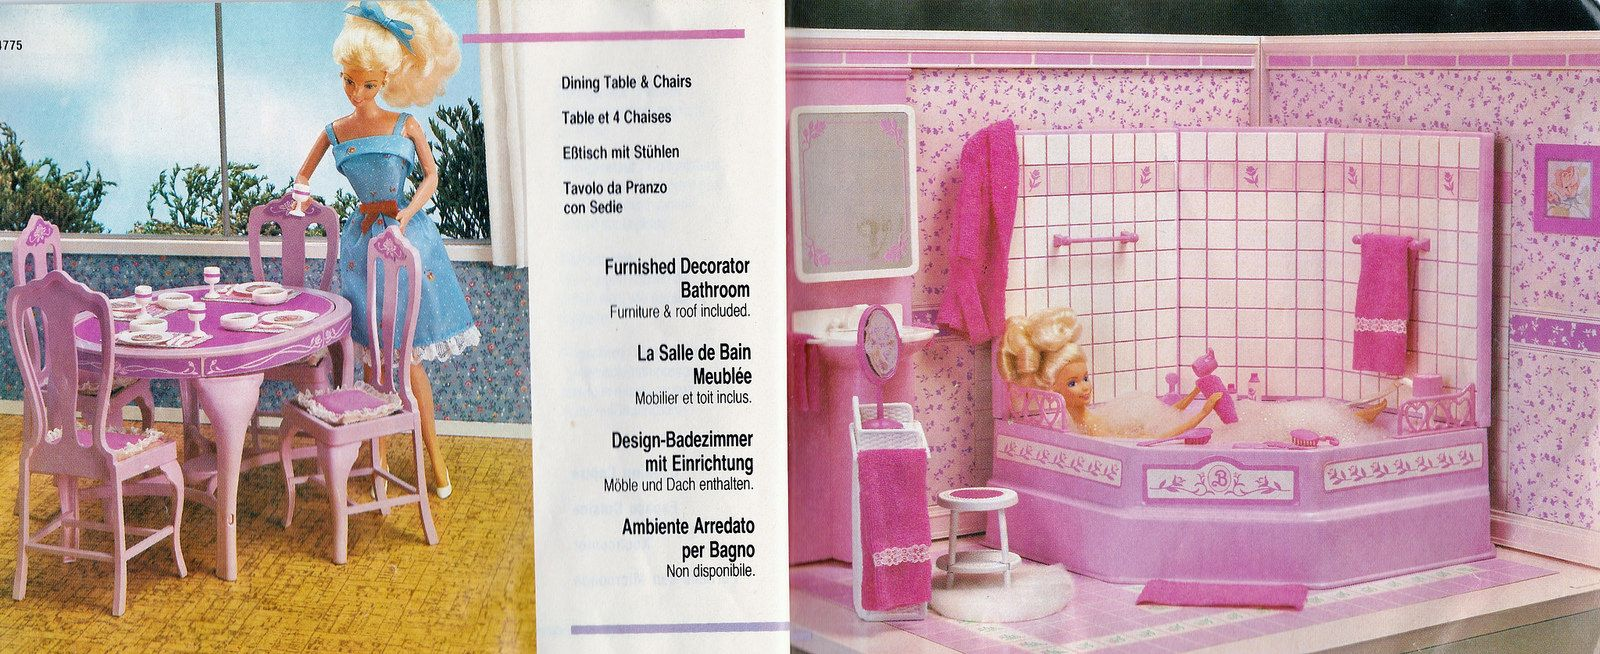 1987 living pretty barbie dining table & chairs #4775 // 1987, Badezimmer ideen